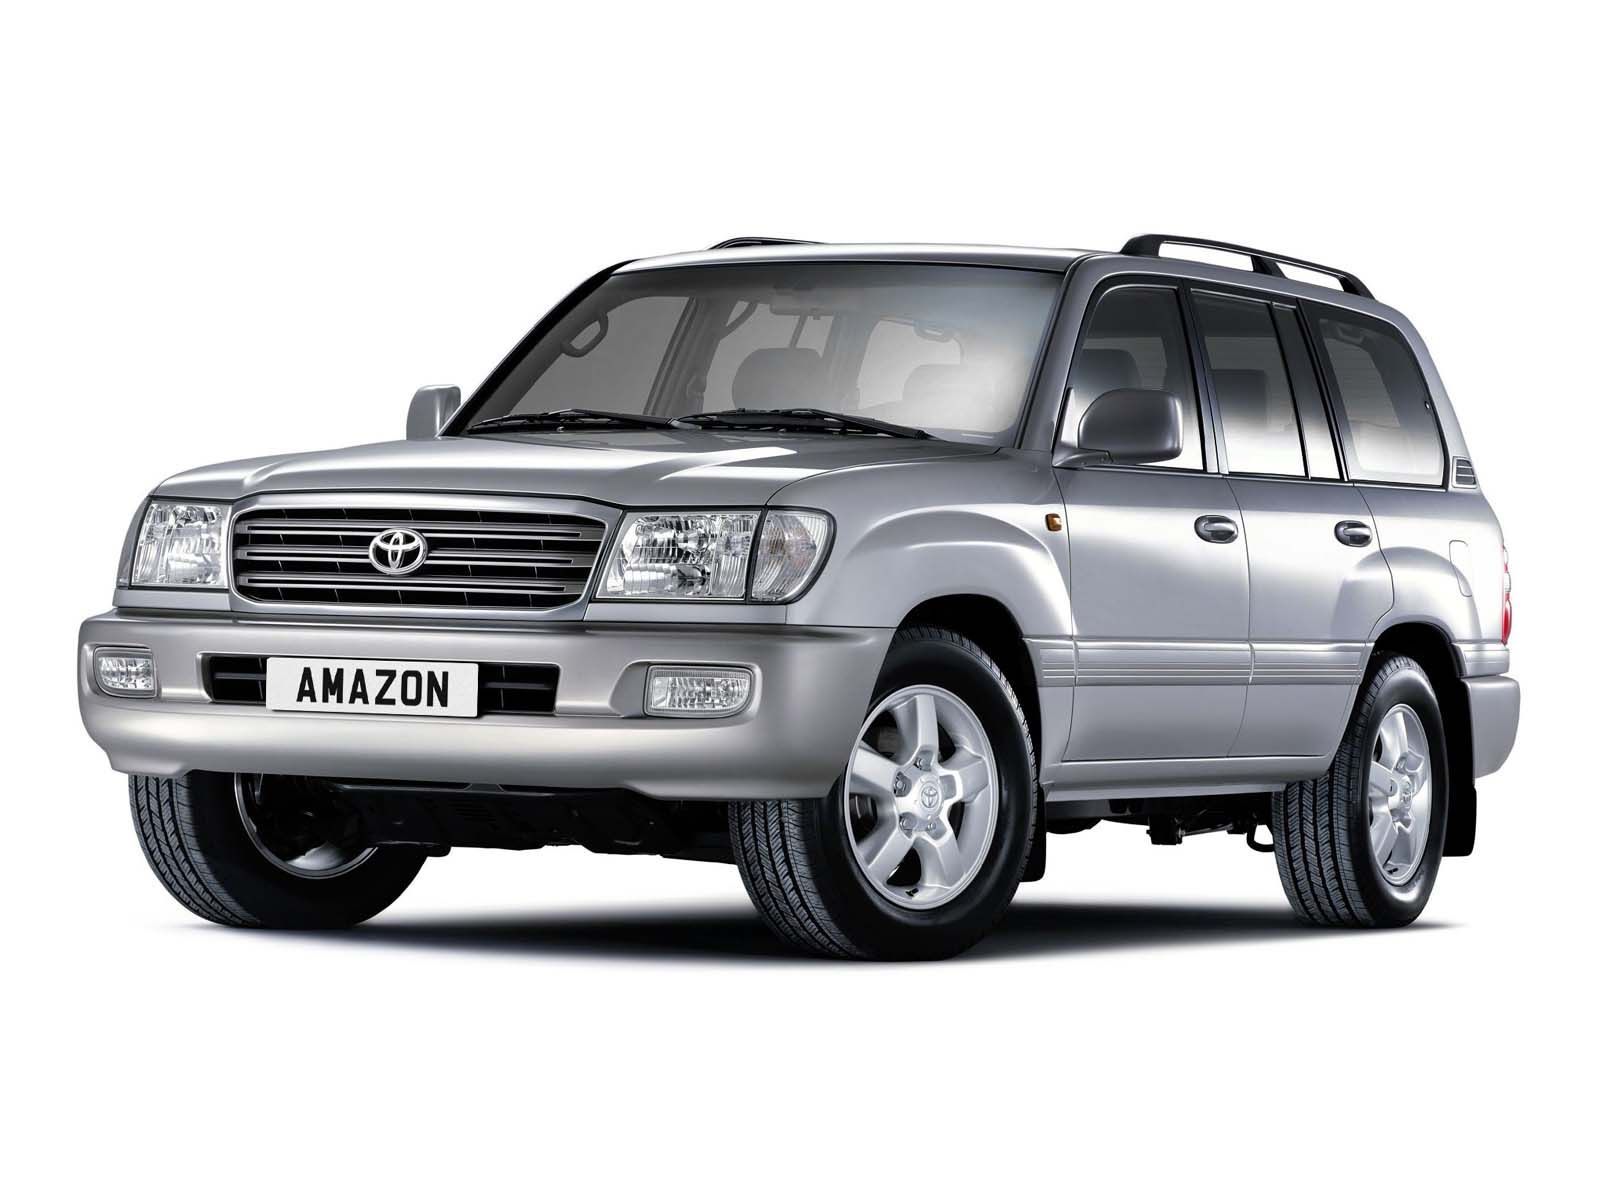 Toyota-Land_Cruiser_100_mp6_pic_4090